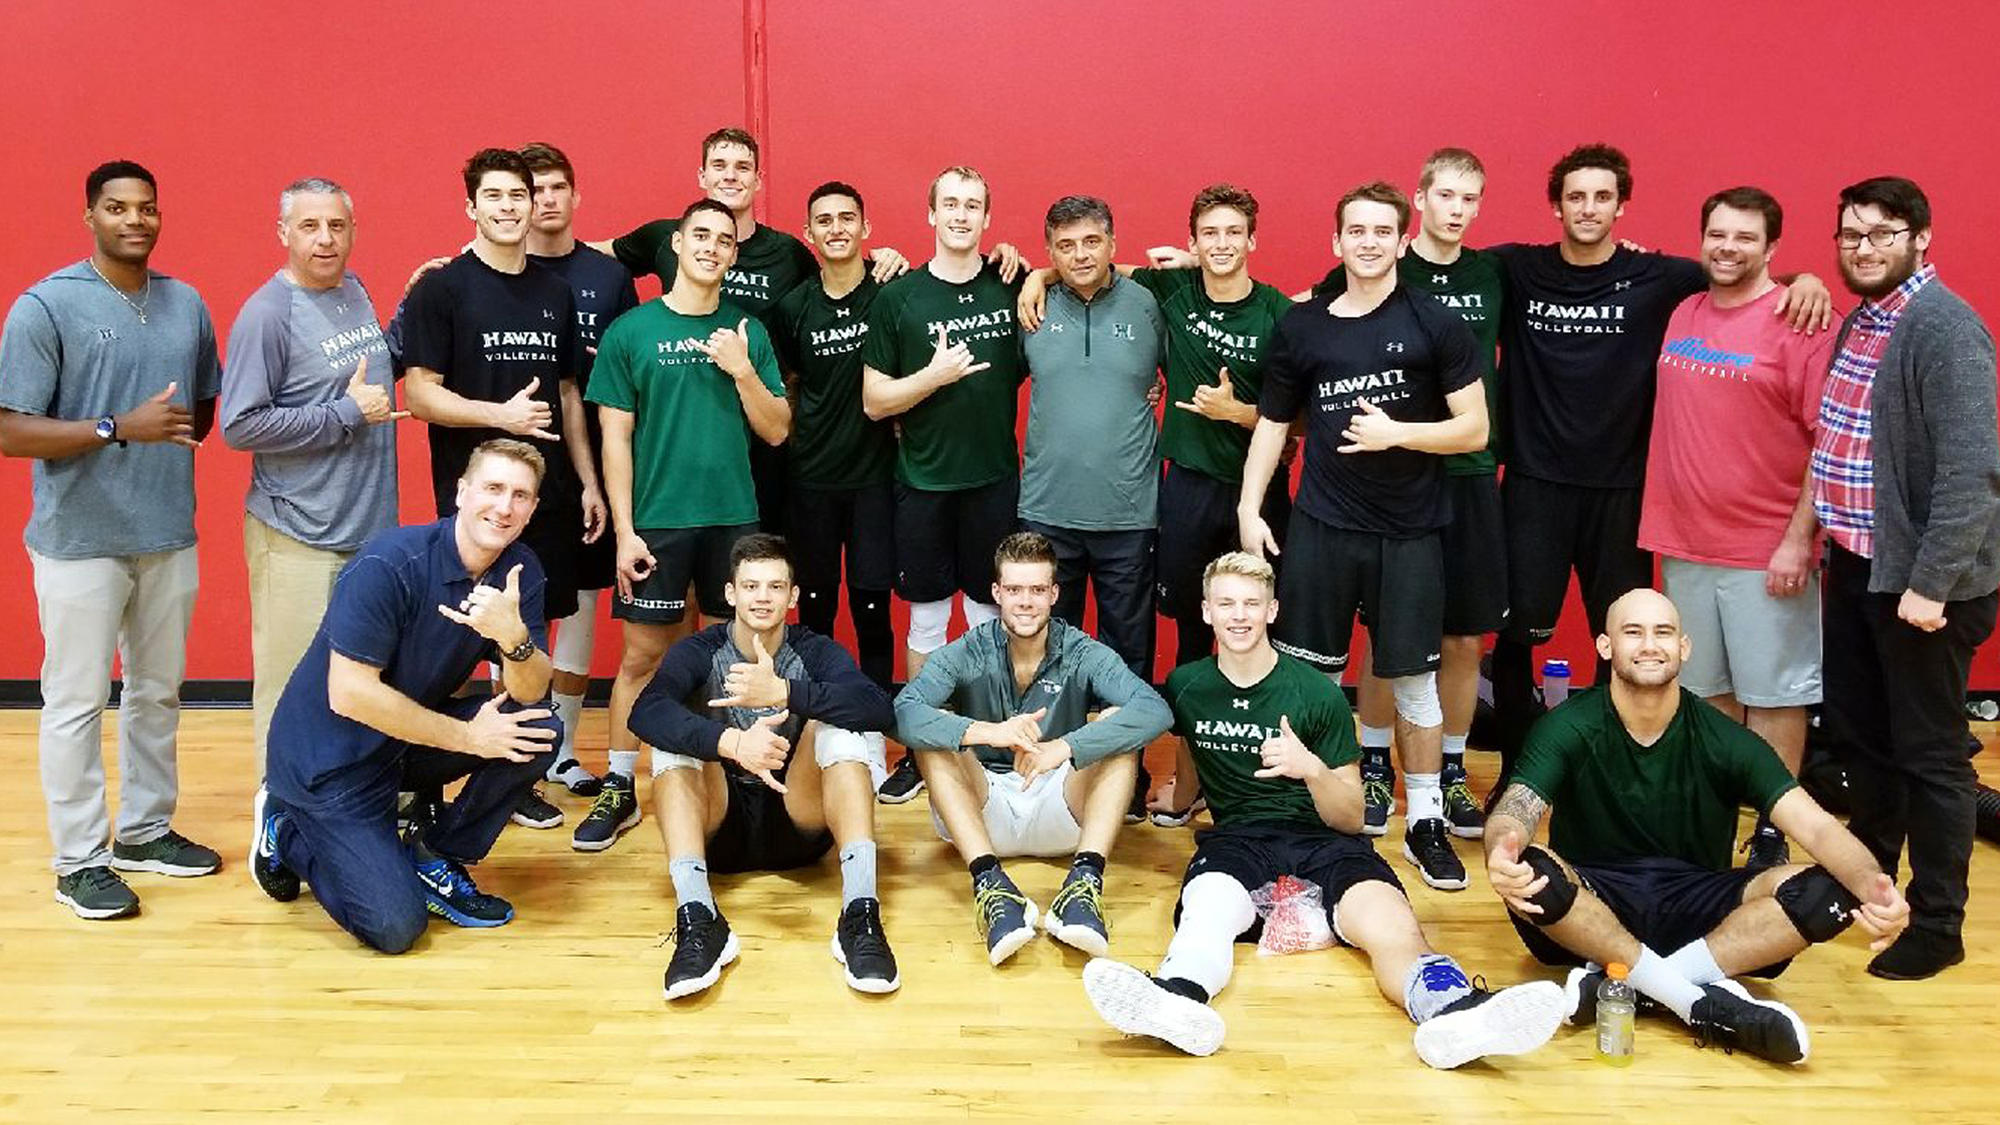 Men S Volleyball Match Postponed Uh To Play Two Matches On Sunday University Of Hawai I At Manoa Athletics